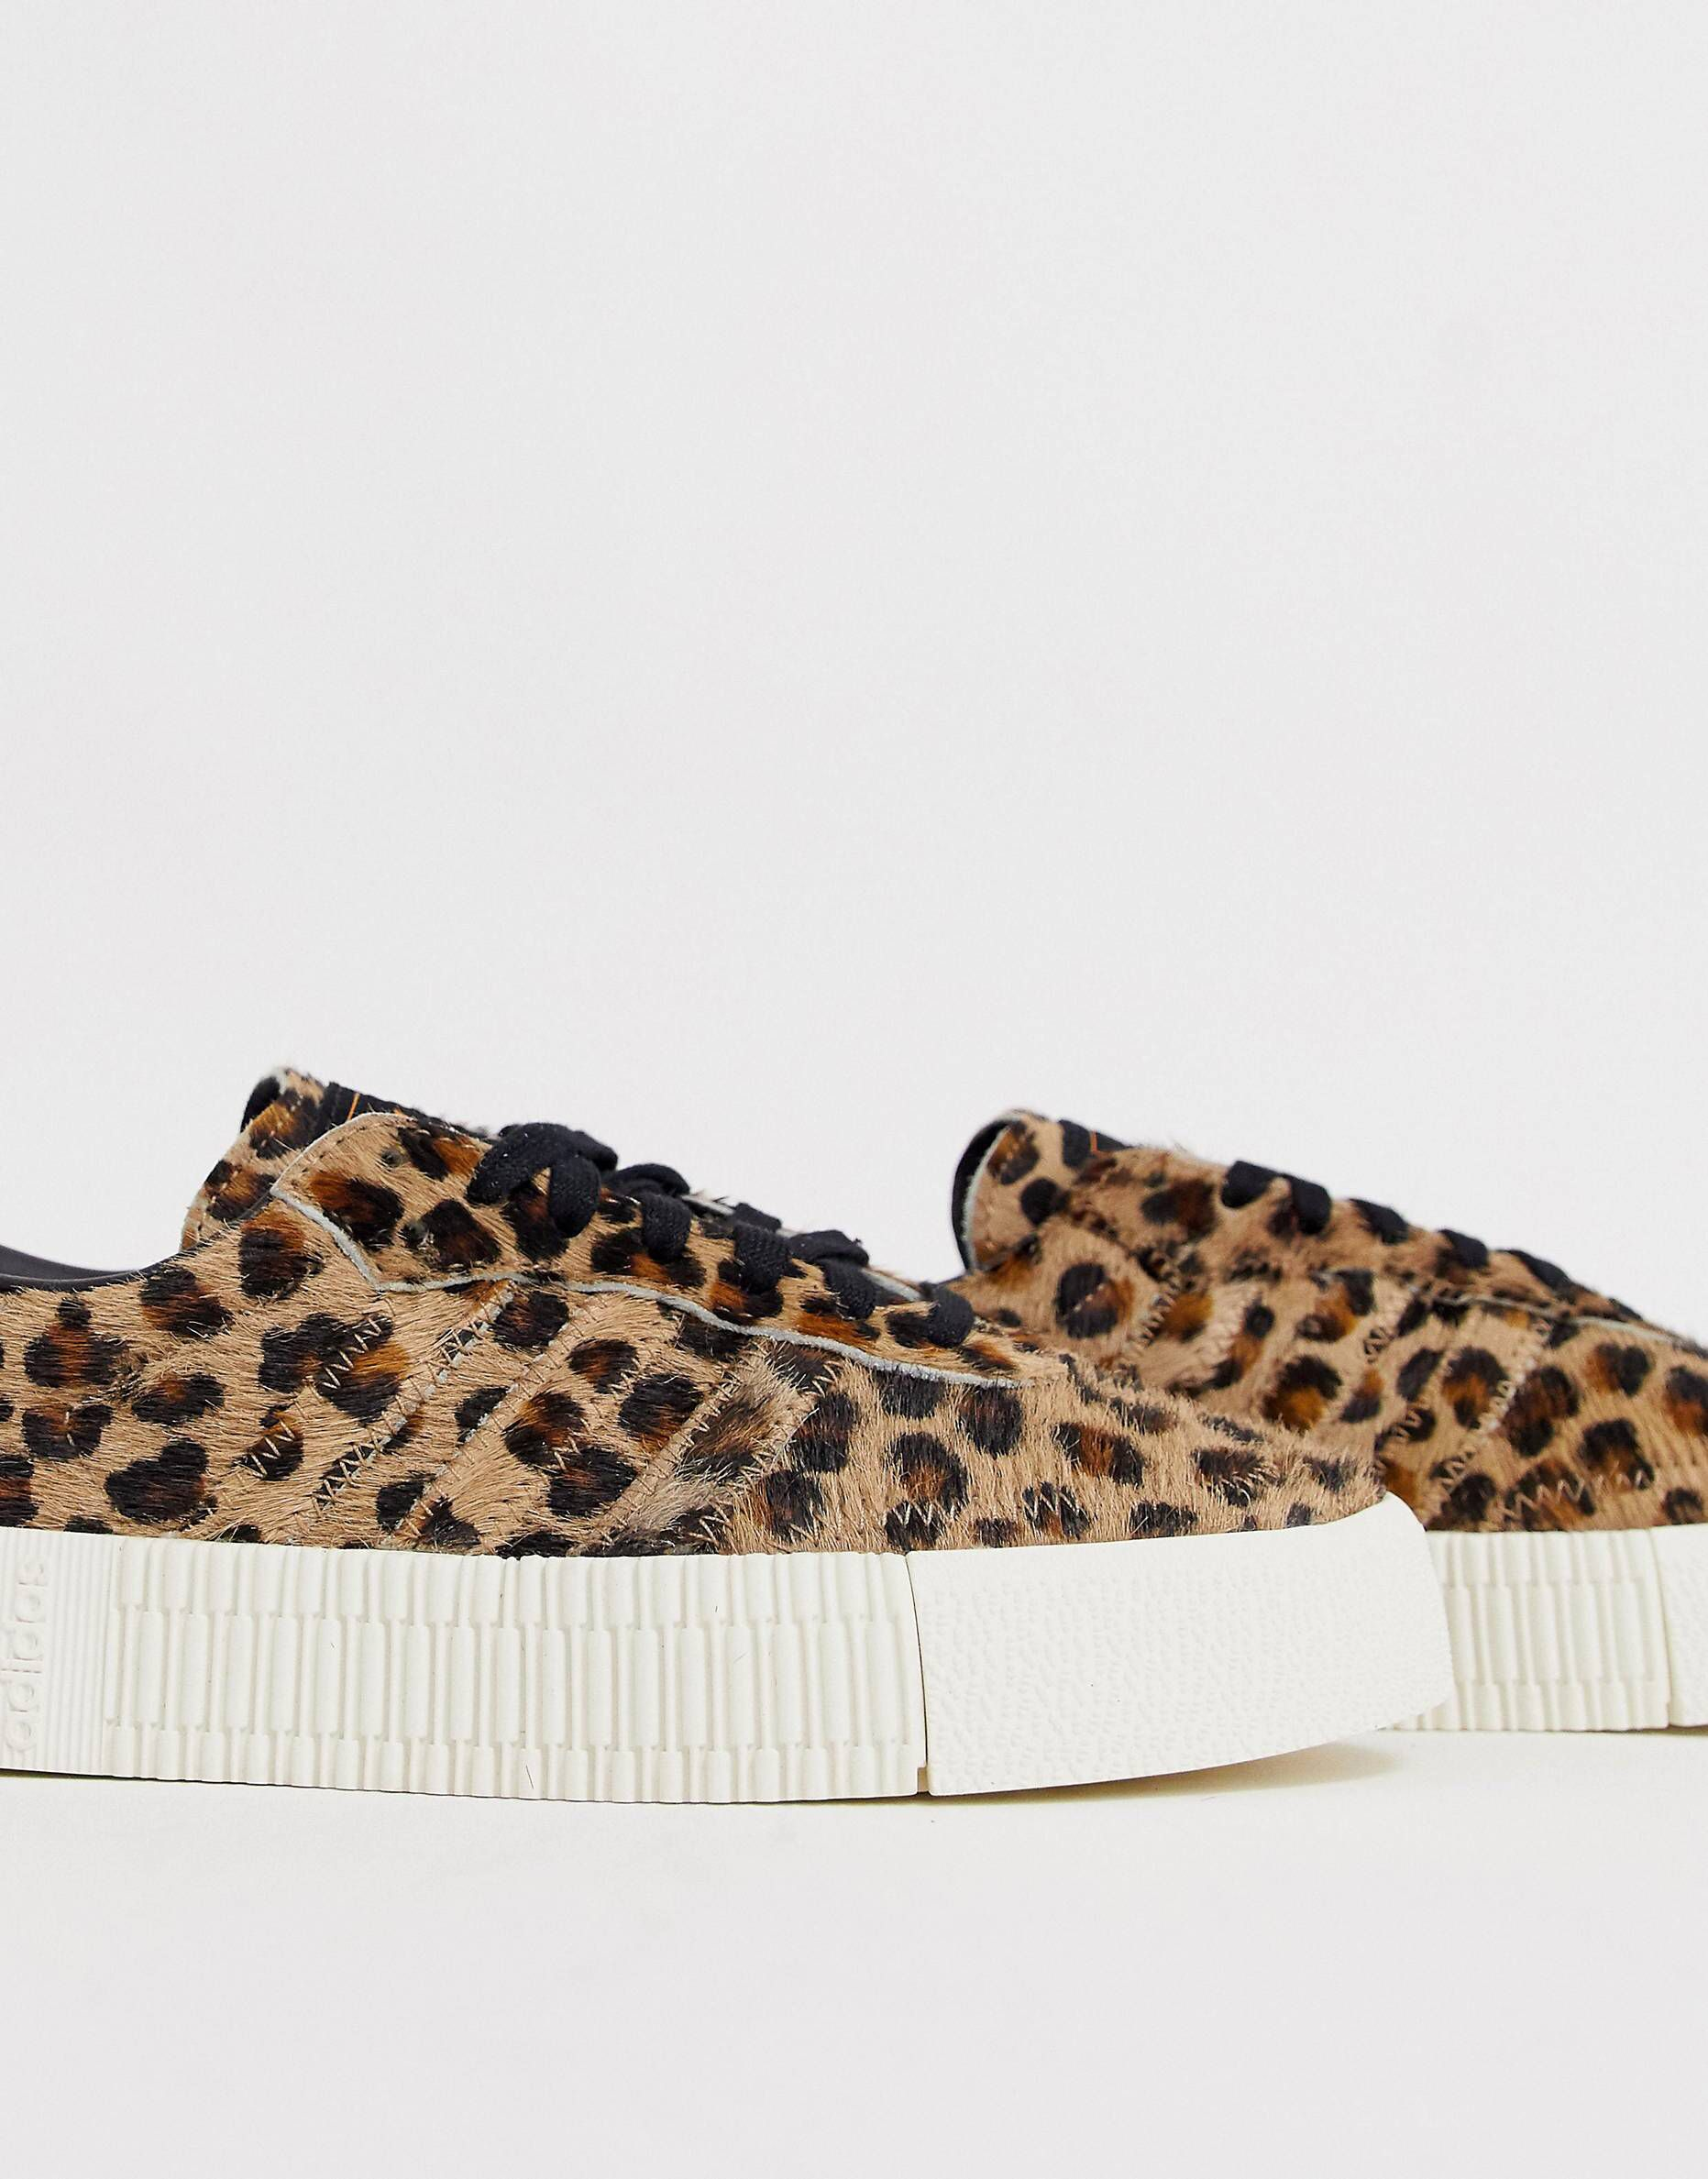 Pin by Courtney Smith on Shoes | Slip on sneaker